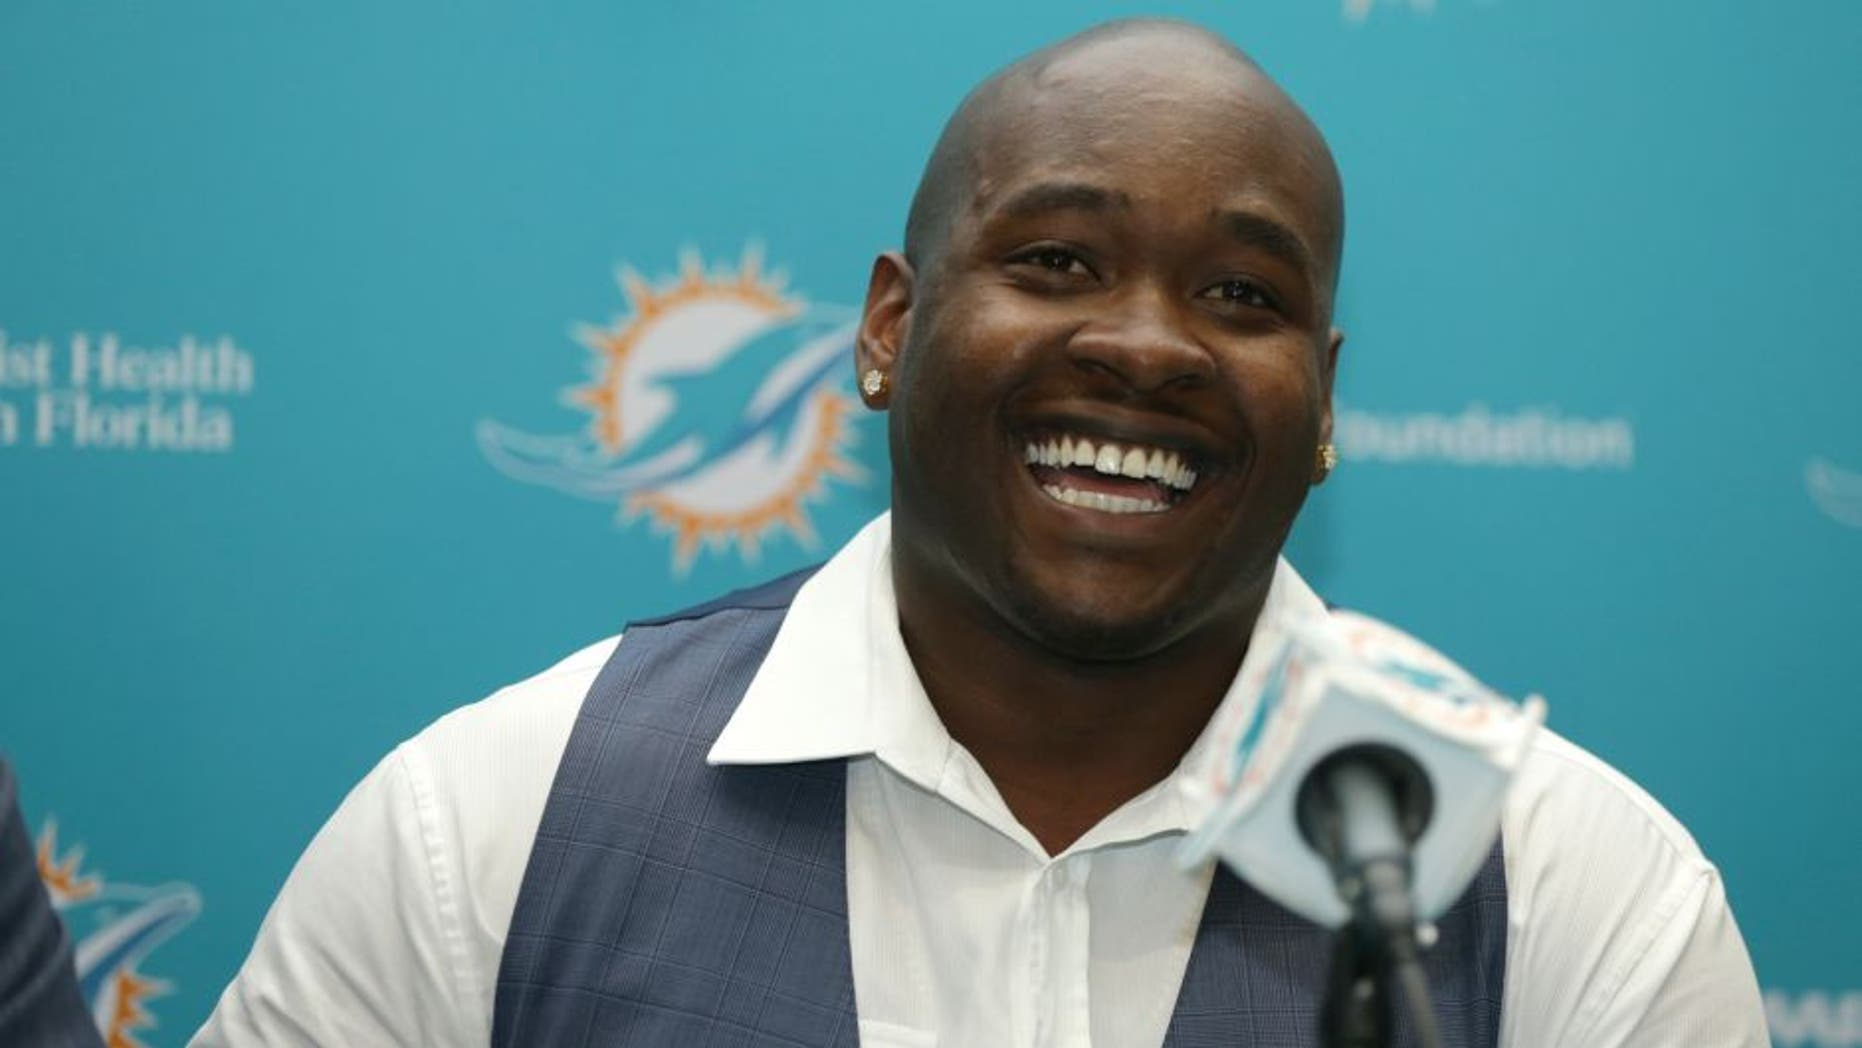 FILE - In this April 29, 2016, file photo, top Miami Dolphins draft pick Laremy Tunsil smiles during a news conference, in Davie, Fla. Tunsil and the Dolphins were quick to agree on his value in the wake of his NFL draft freefall. The offensive lineman from Ole Miss signed his rookie contract before joining the Dolphins' rookie minicamp which began Friday, May 6, 2016. (AP Photo/Lynne Sladky)